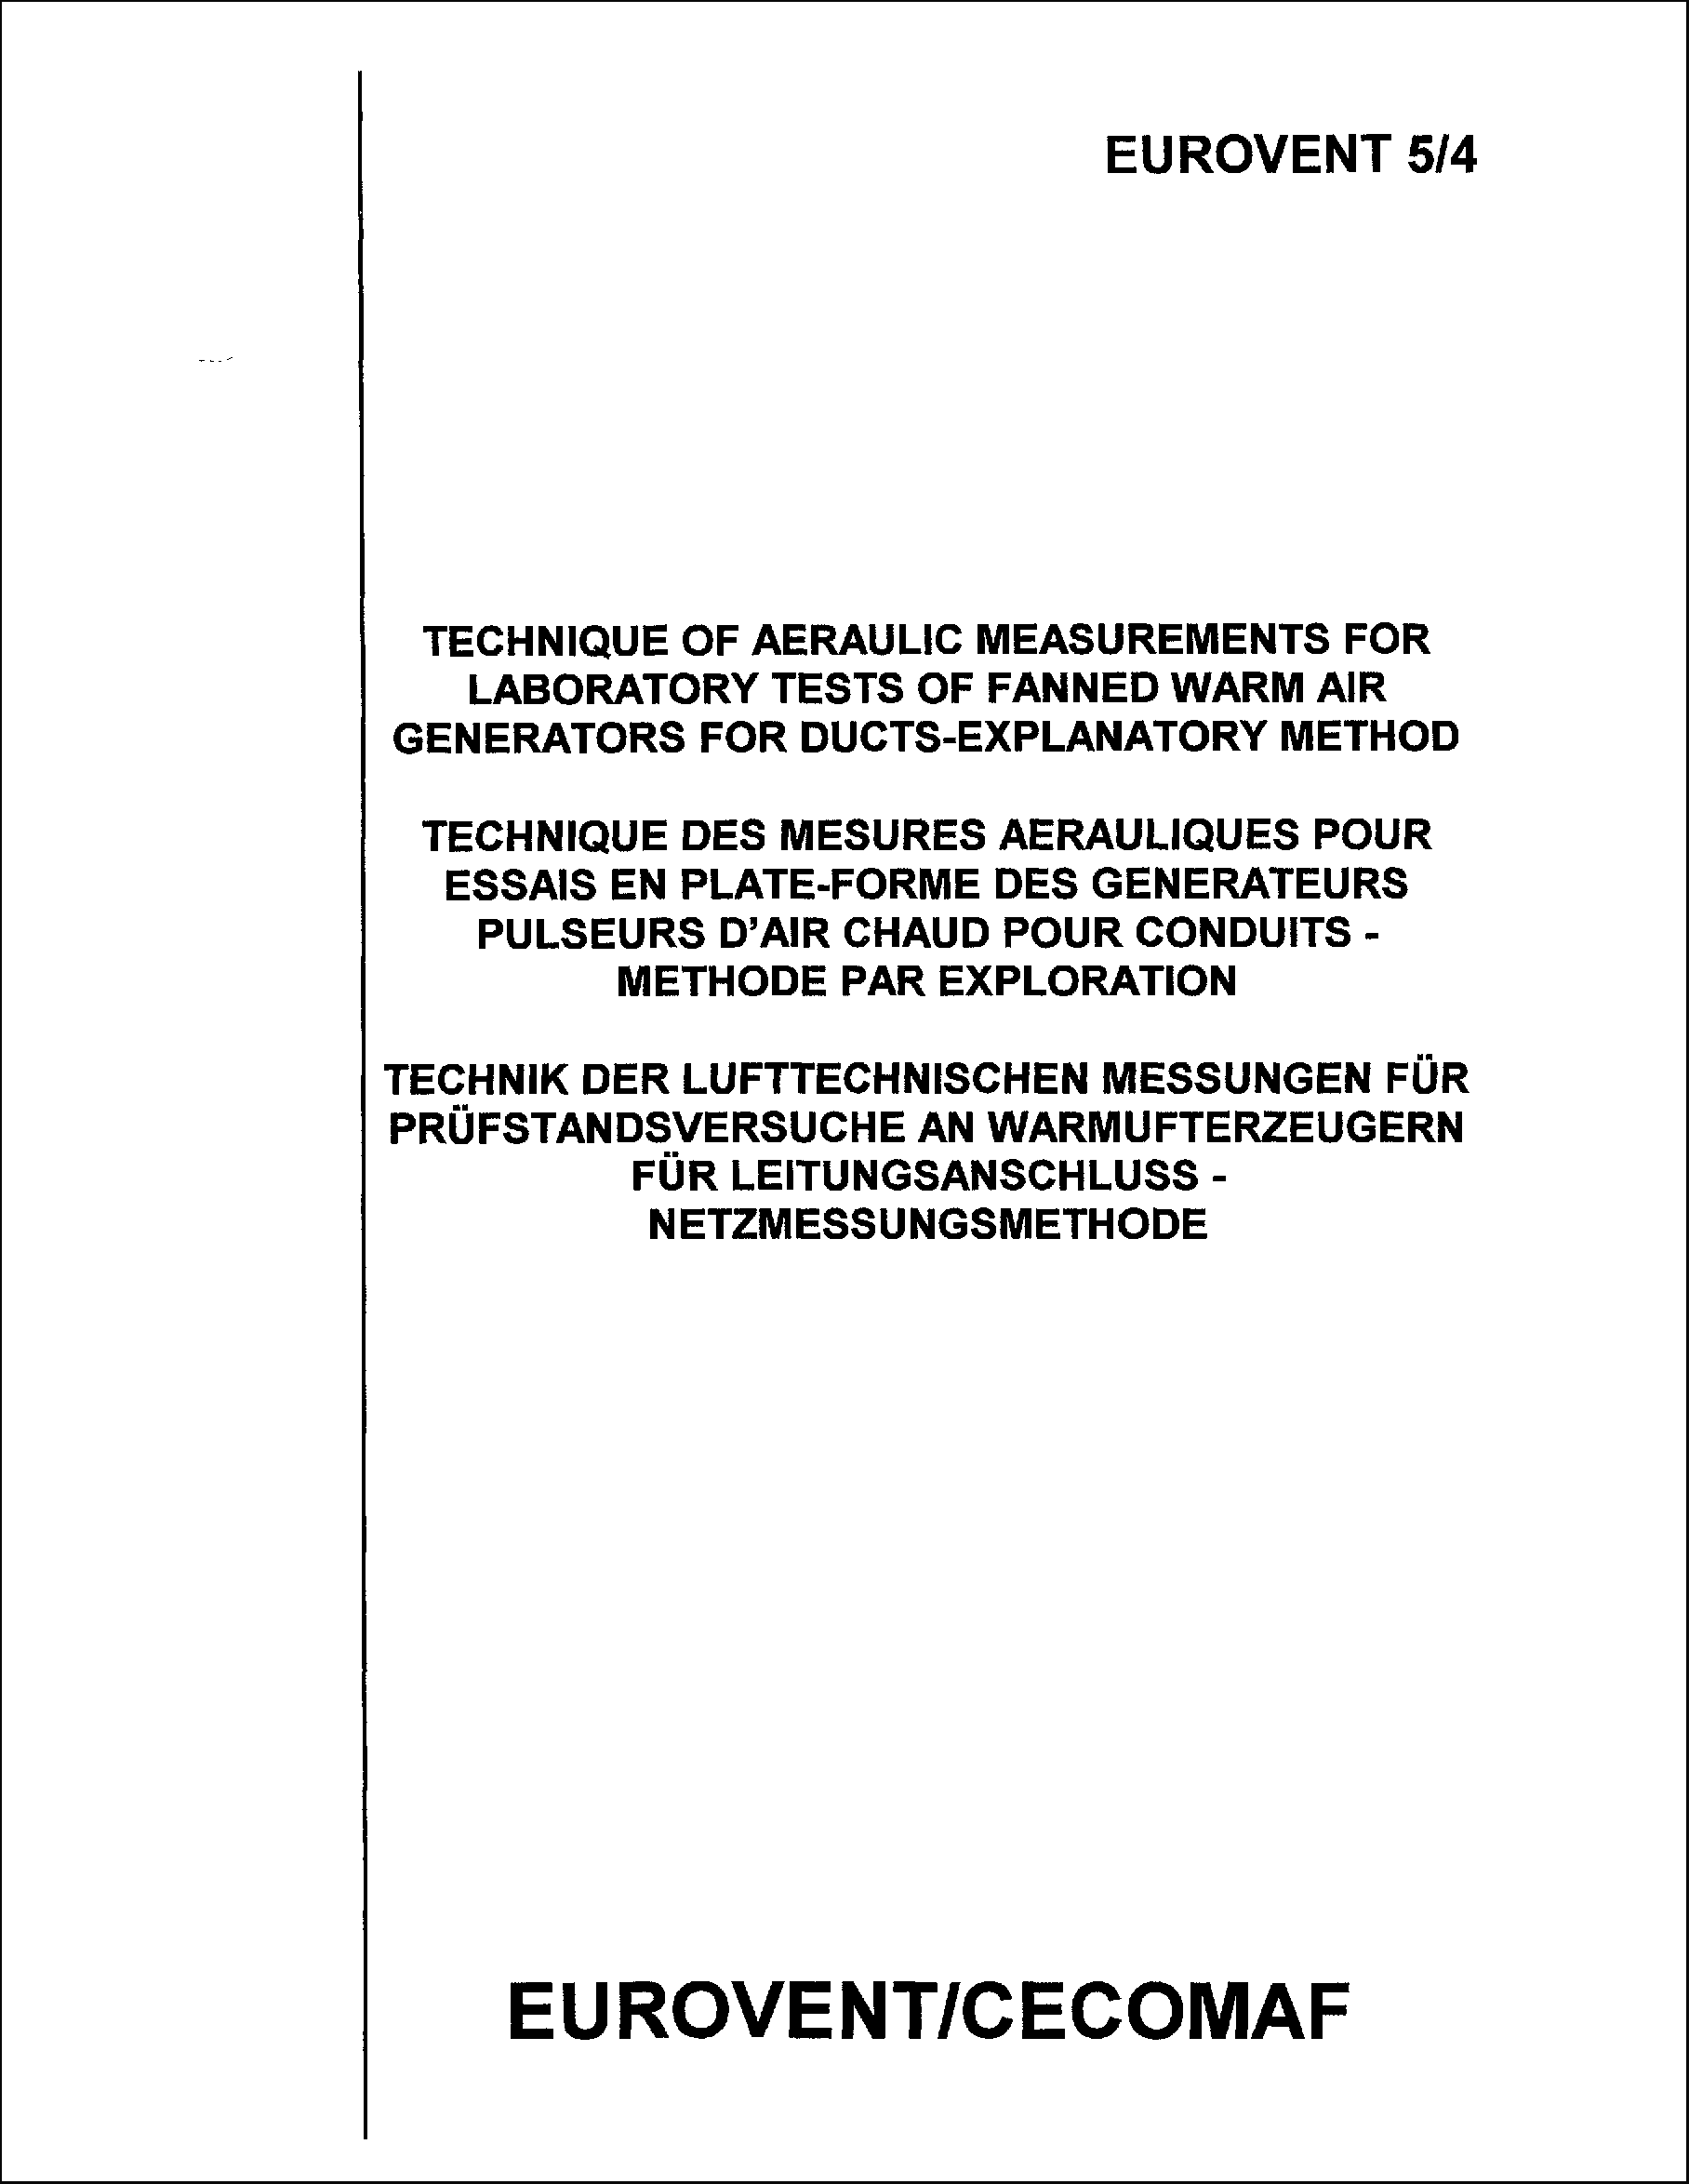 1987 - Technique of aeraulic measurments for laboratory tests of fanned warm air generators for ducts-explanatory method